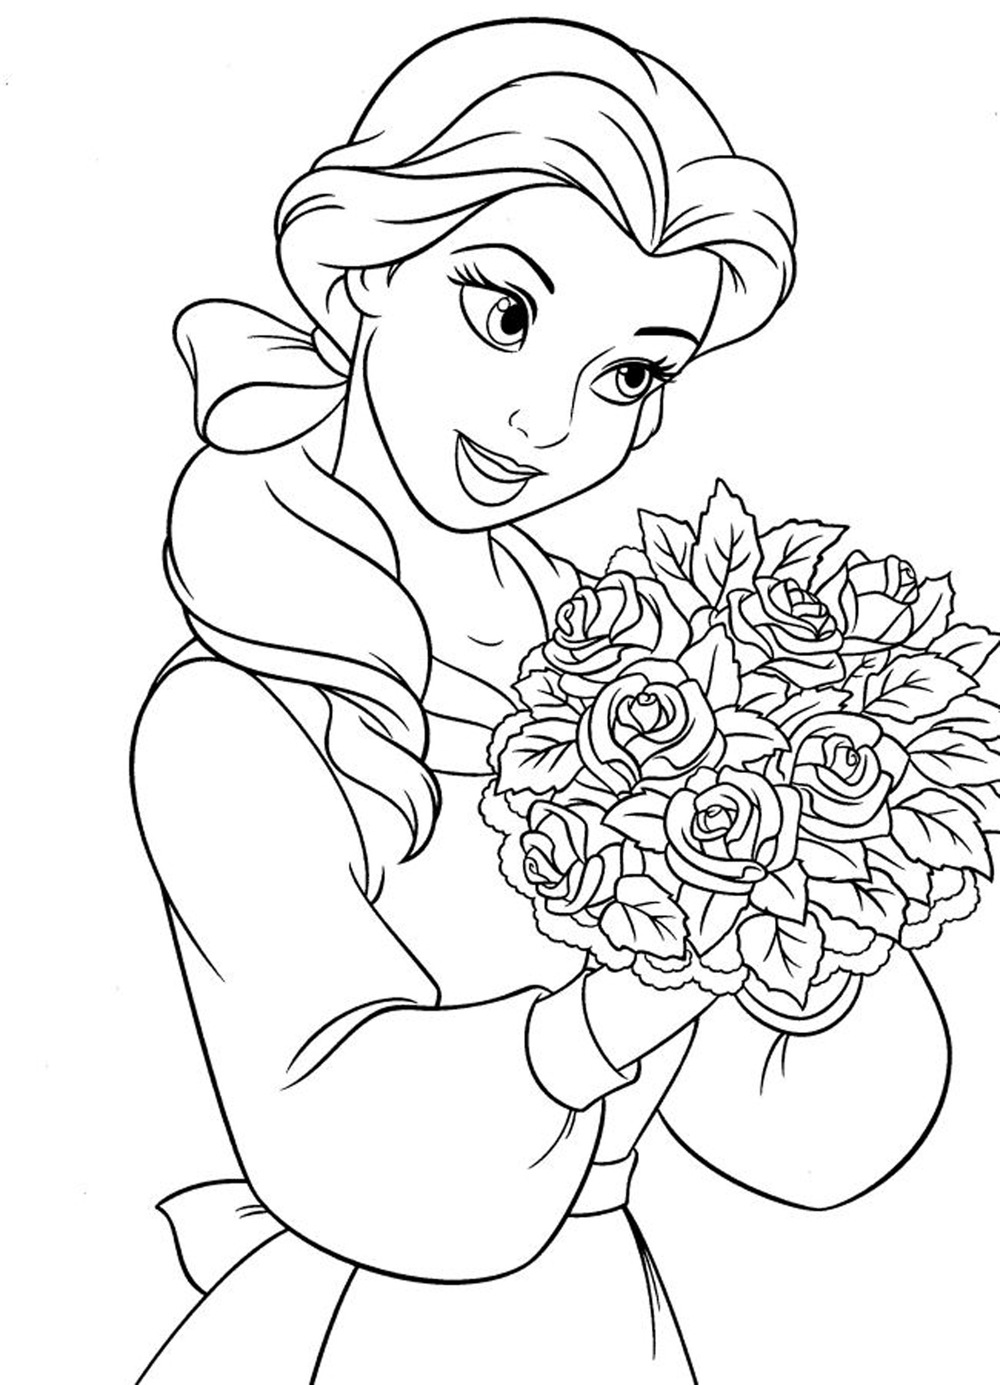 Disney Princess Tiana Coloring Page | Disney | Pinterest | free colouring pages disney princesses